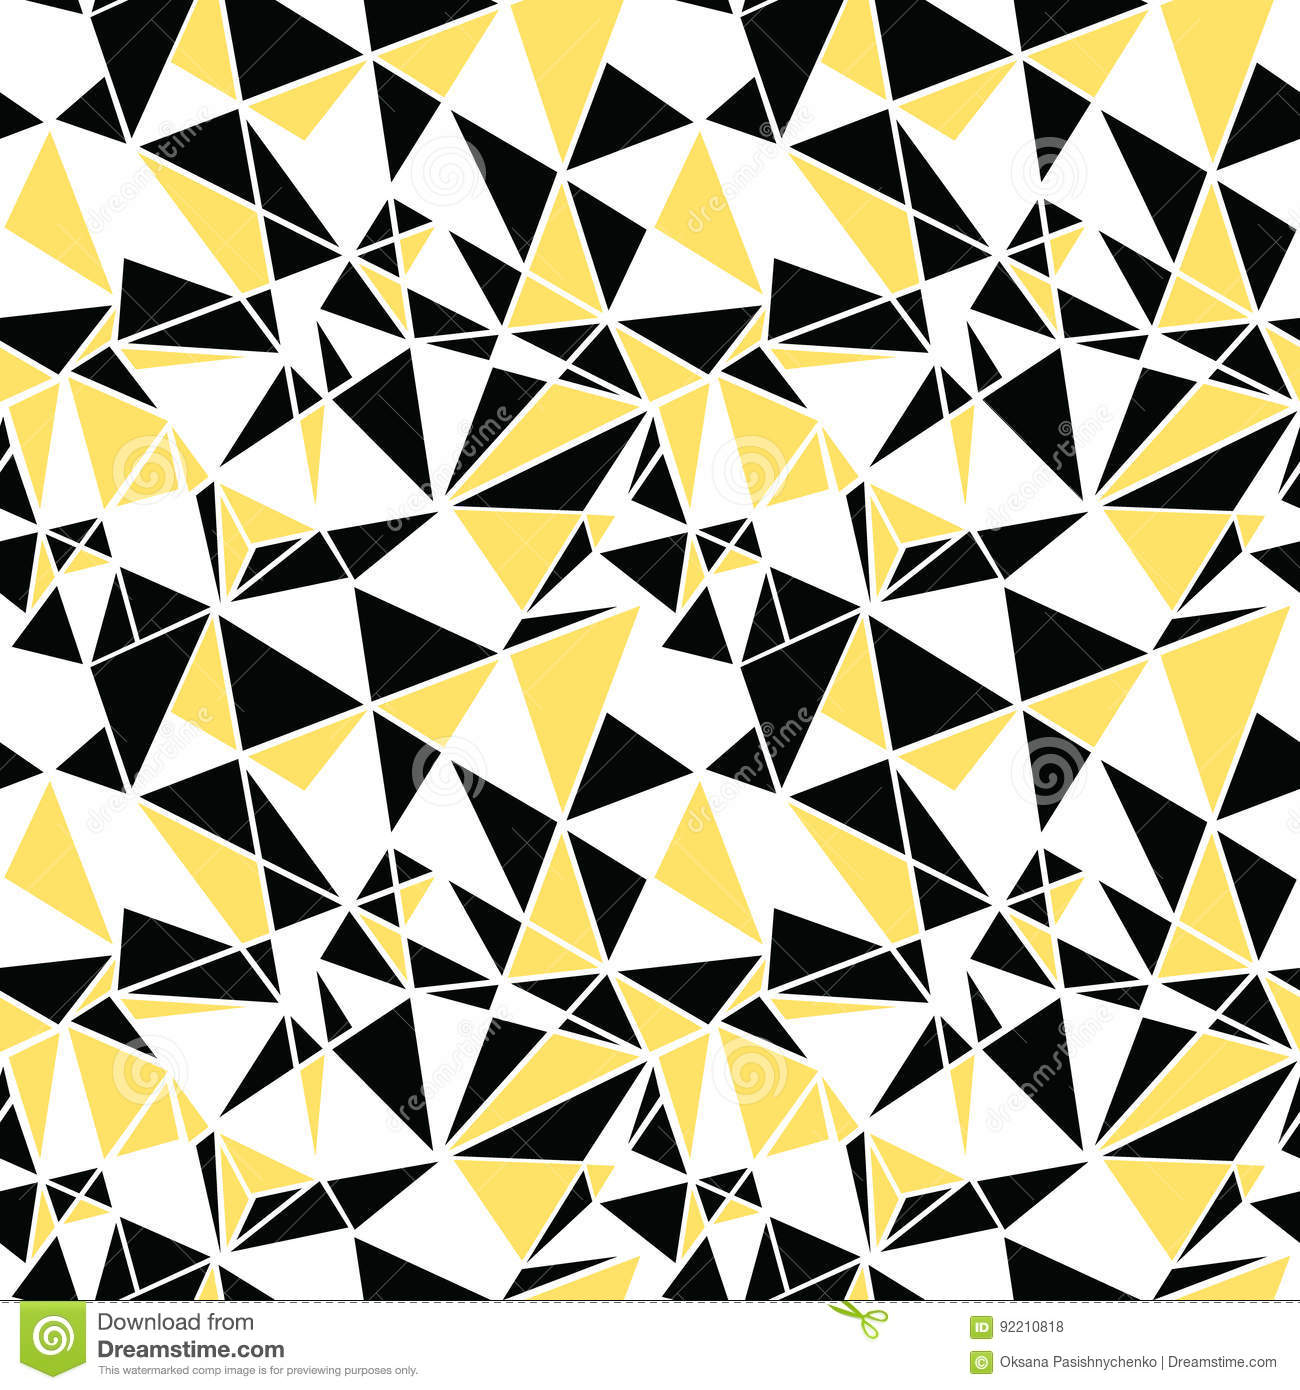 Vector black and yellow triangles abstract seamless repeat pattern design.  Great for modern fabric, wallpaper